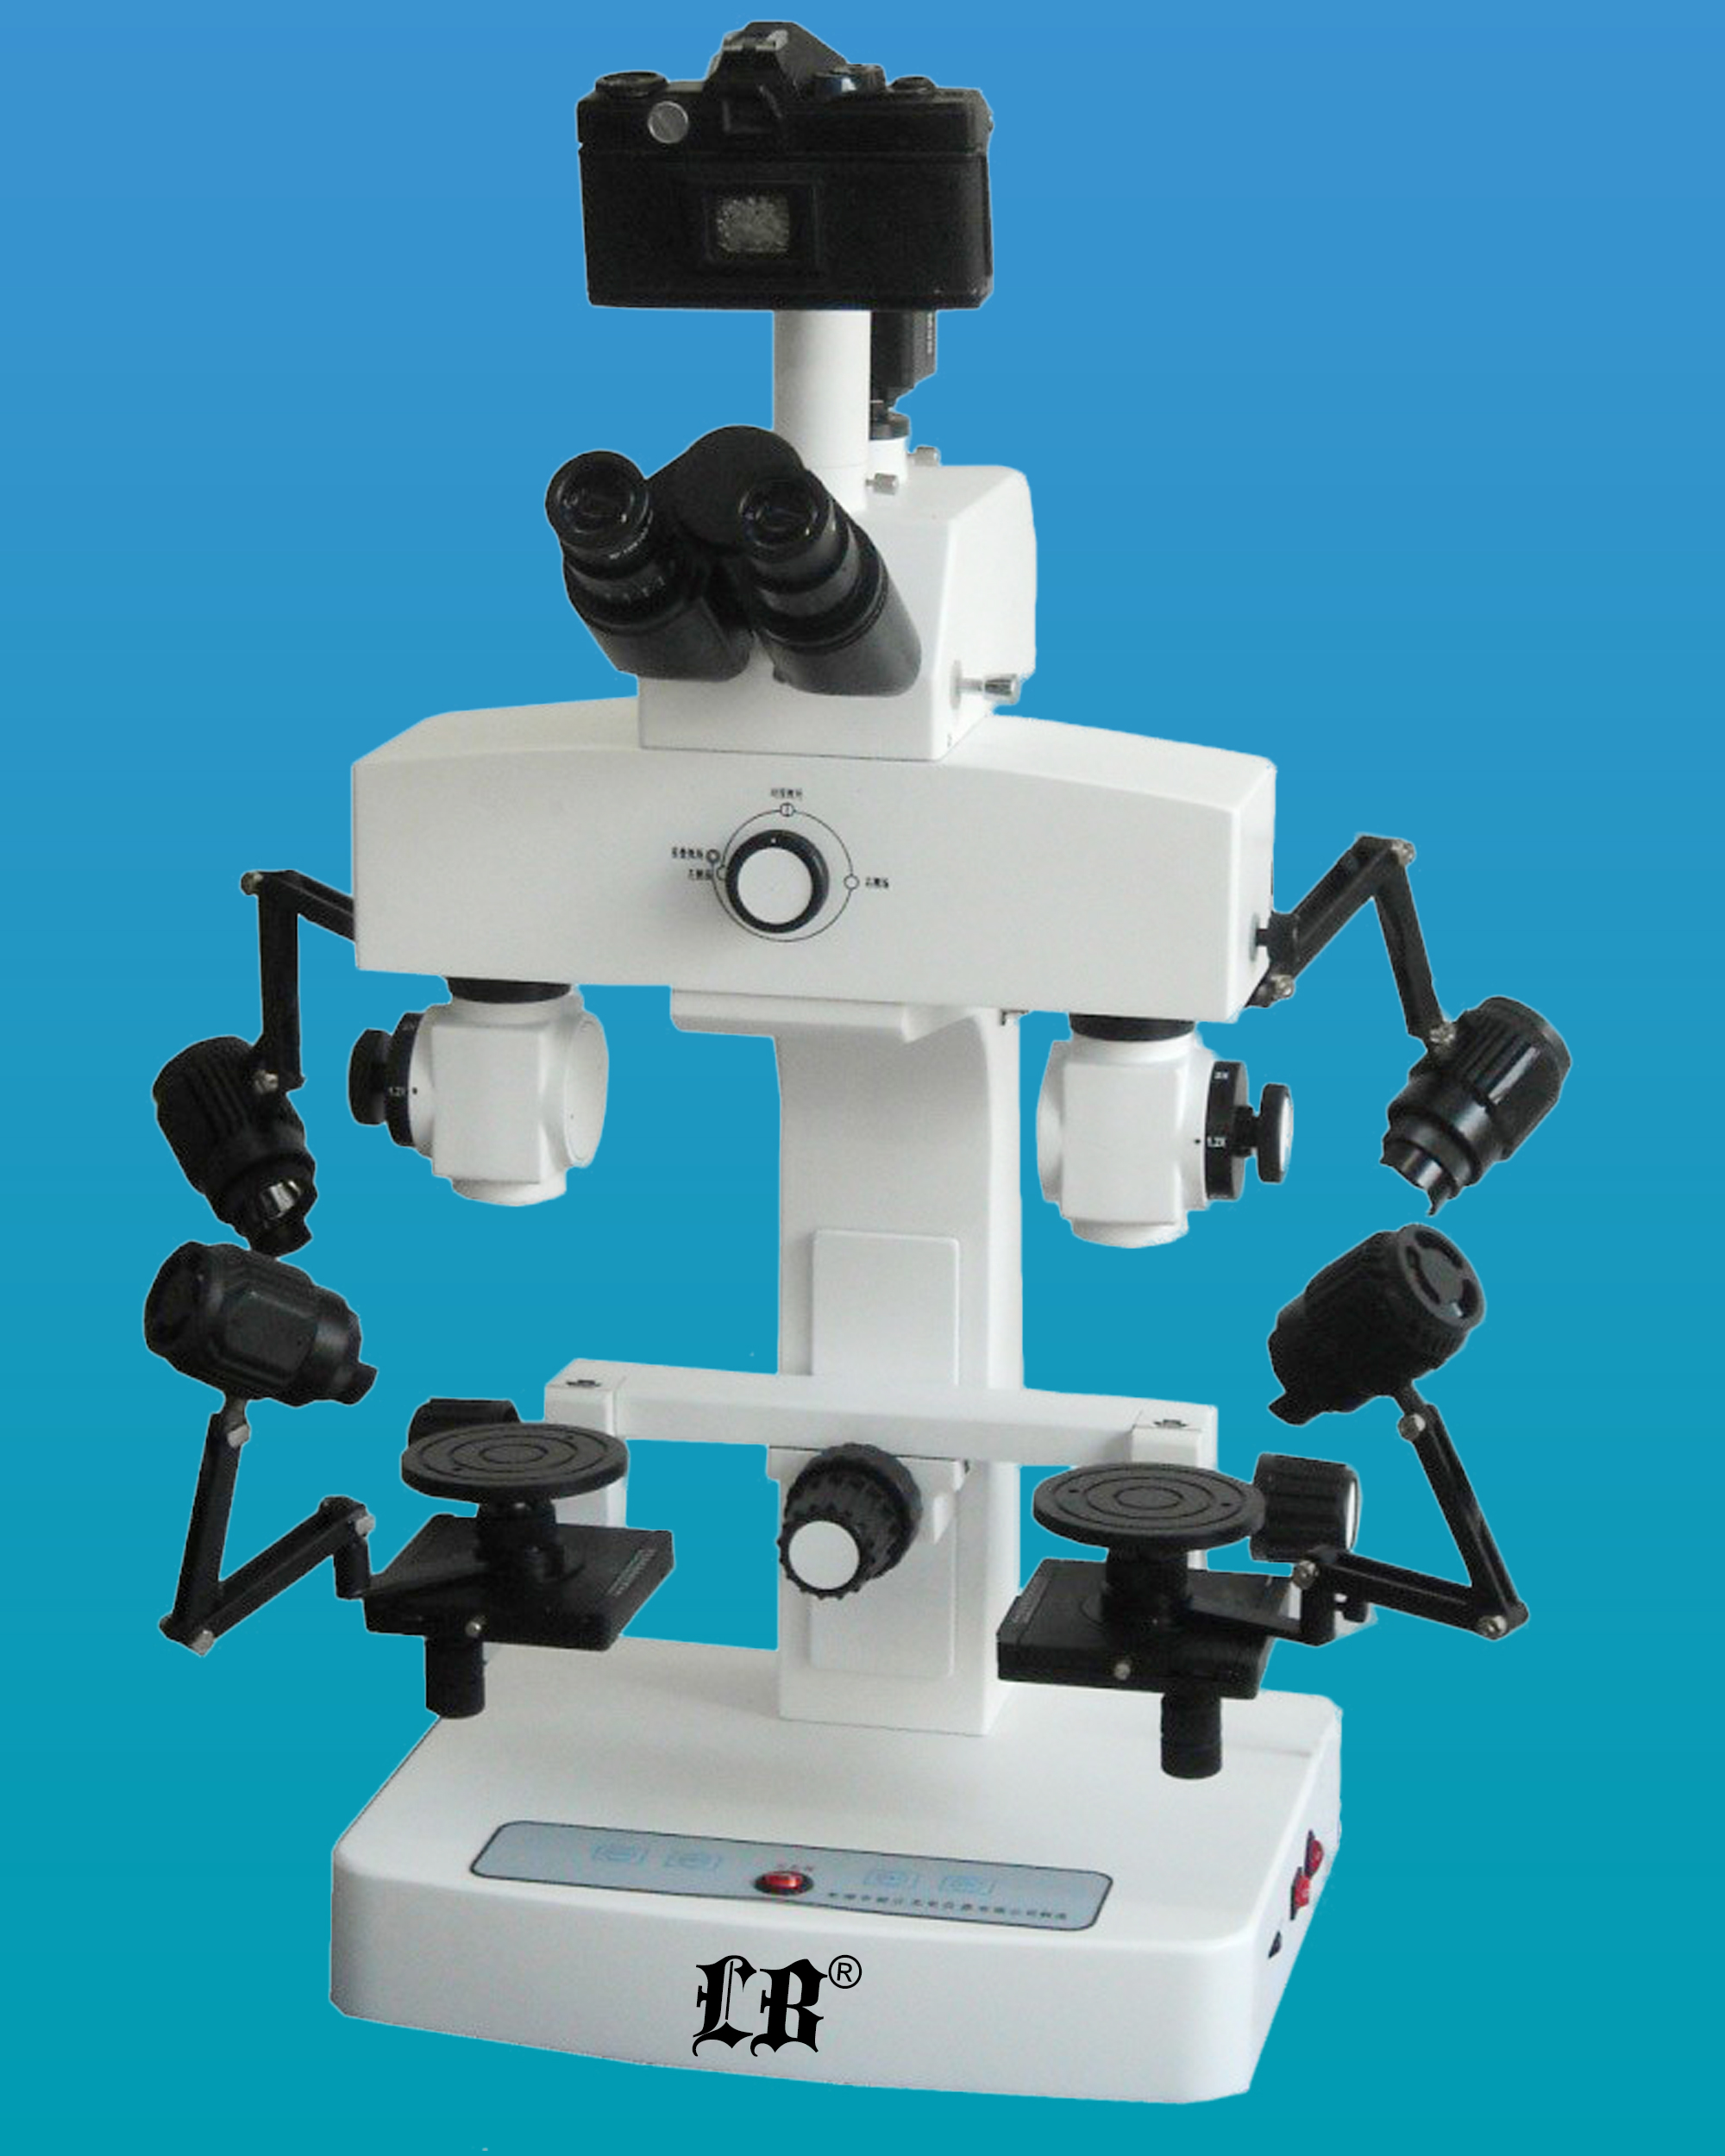 [LB-1000] Comparison Microscope